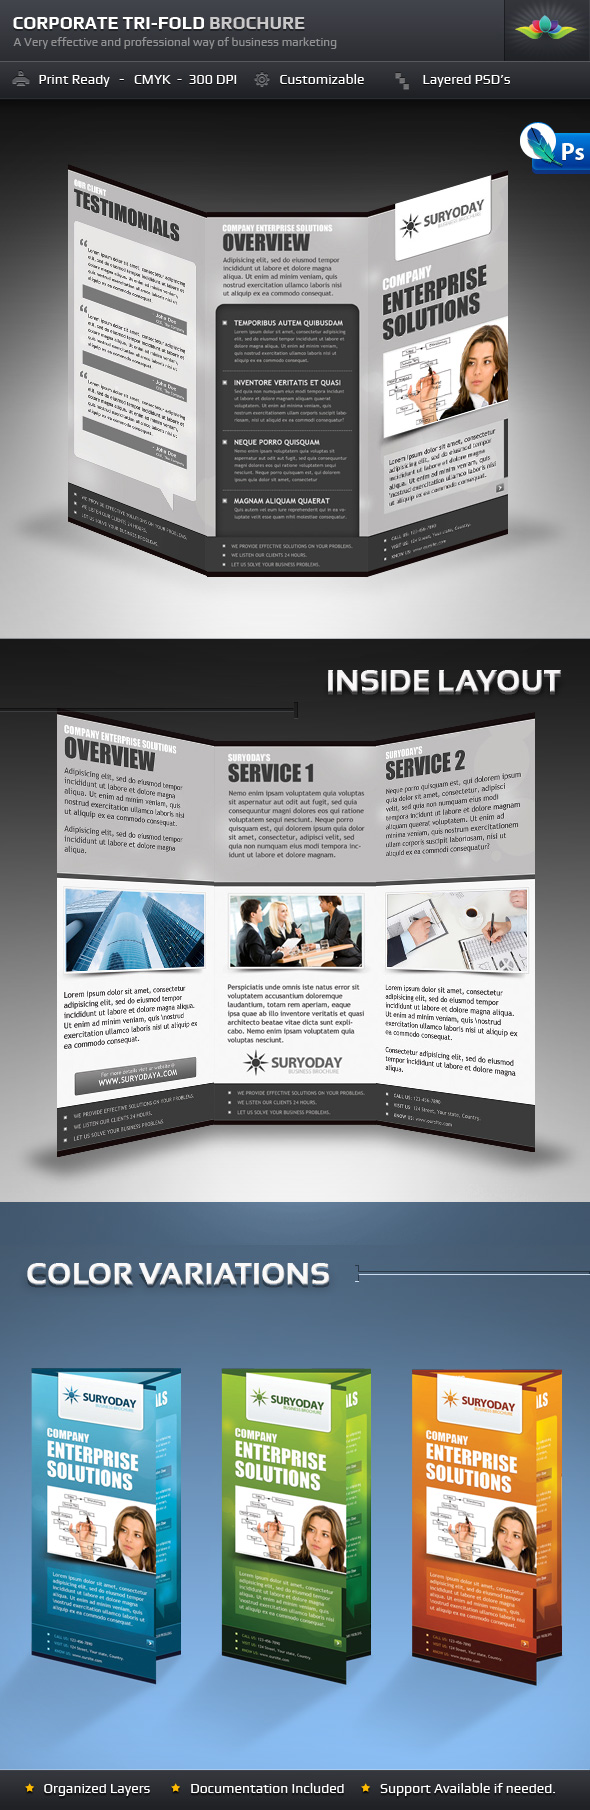 SURYODAY TRI-FOLD BUSINESS BROCHURE by Saptarang